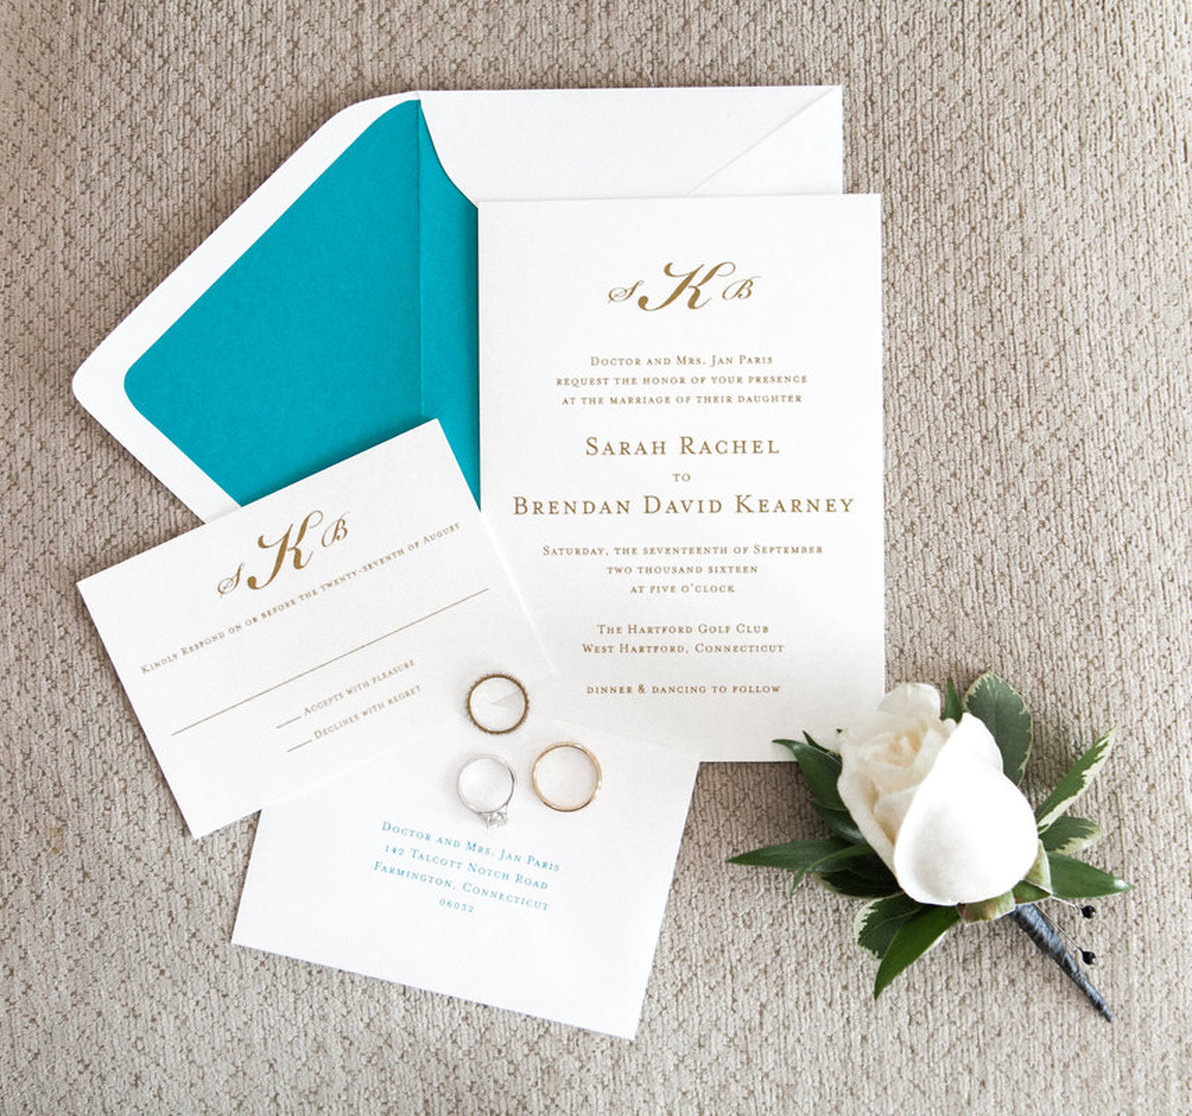 Wedding Invitation Suite by Wedding Paper Divas